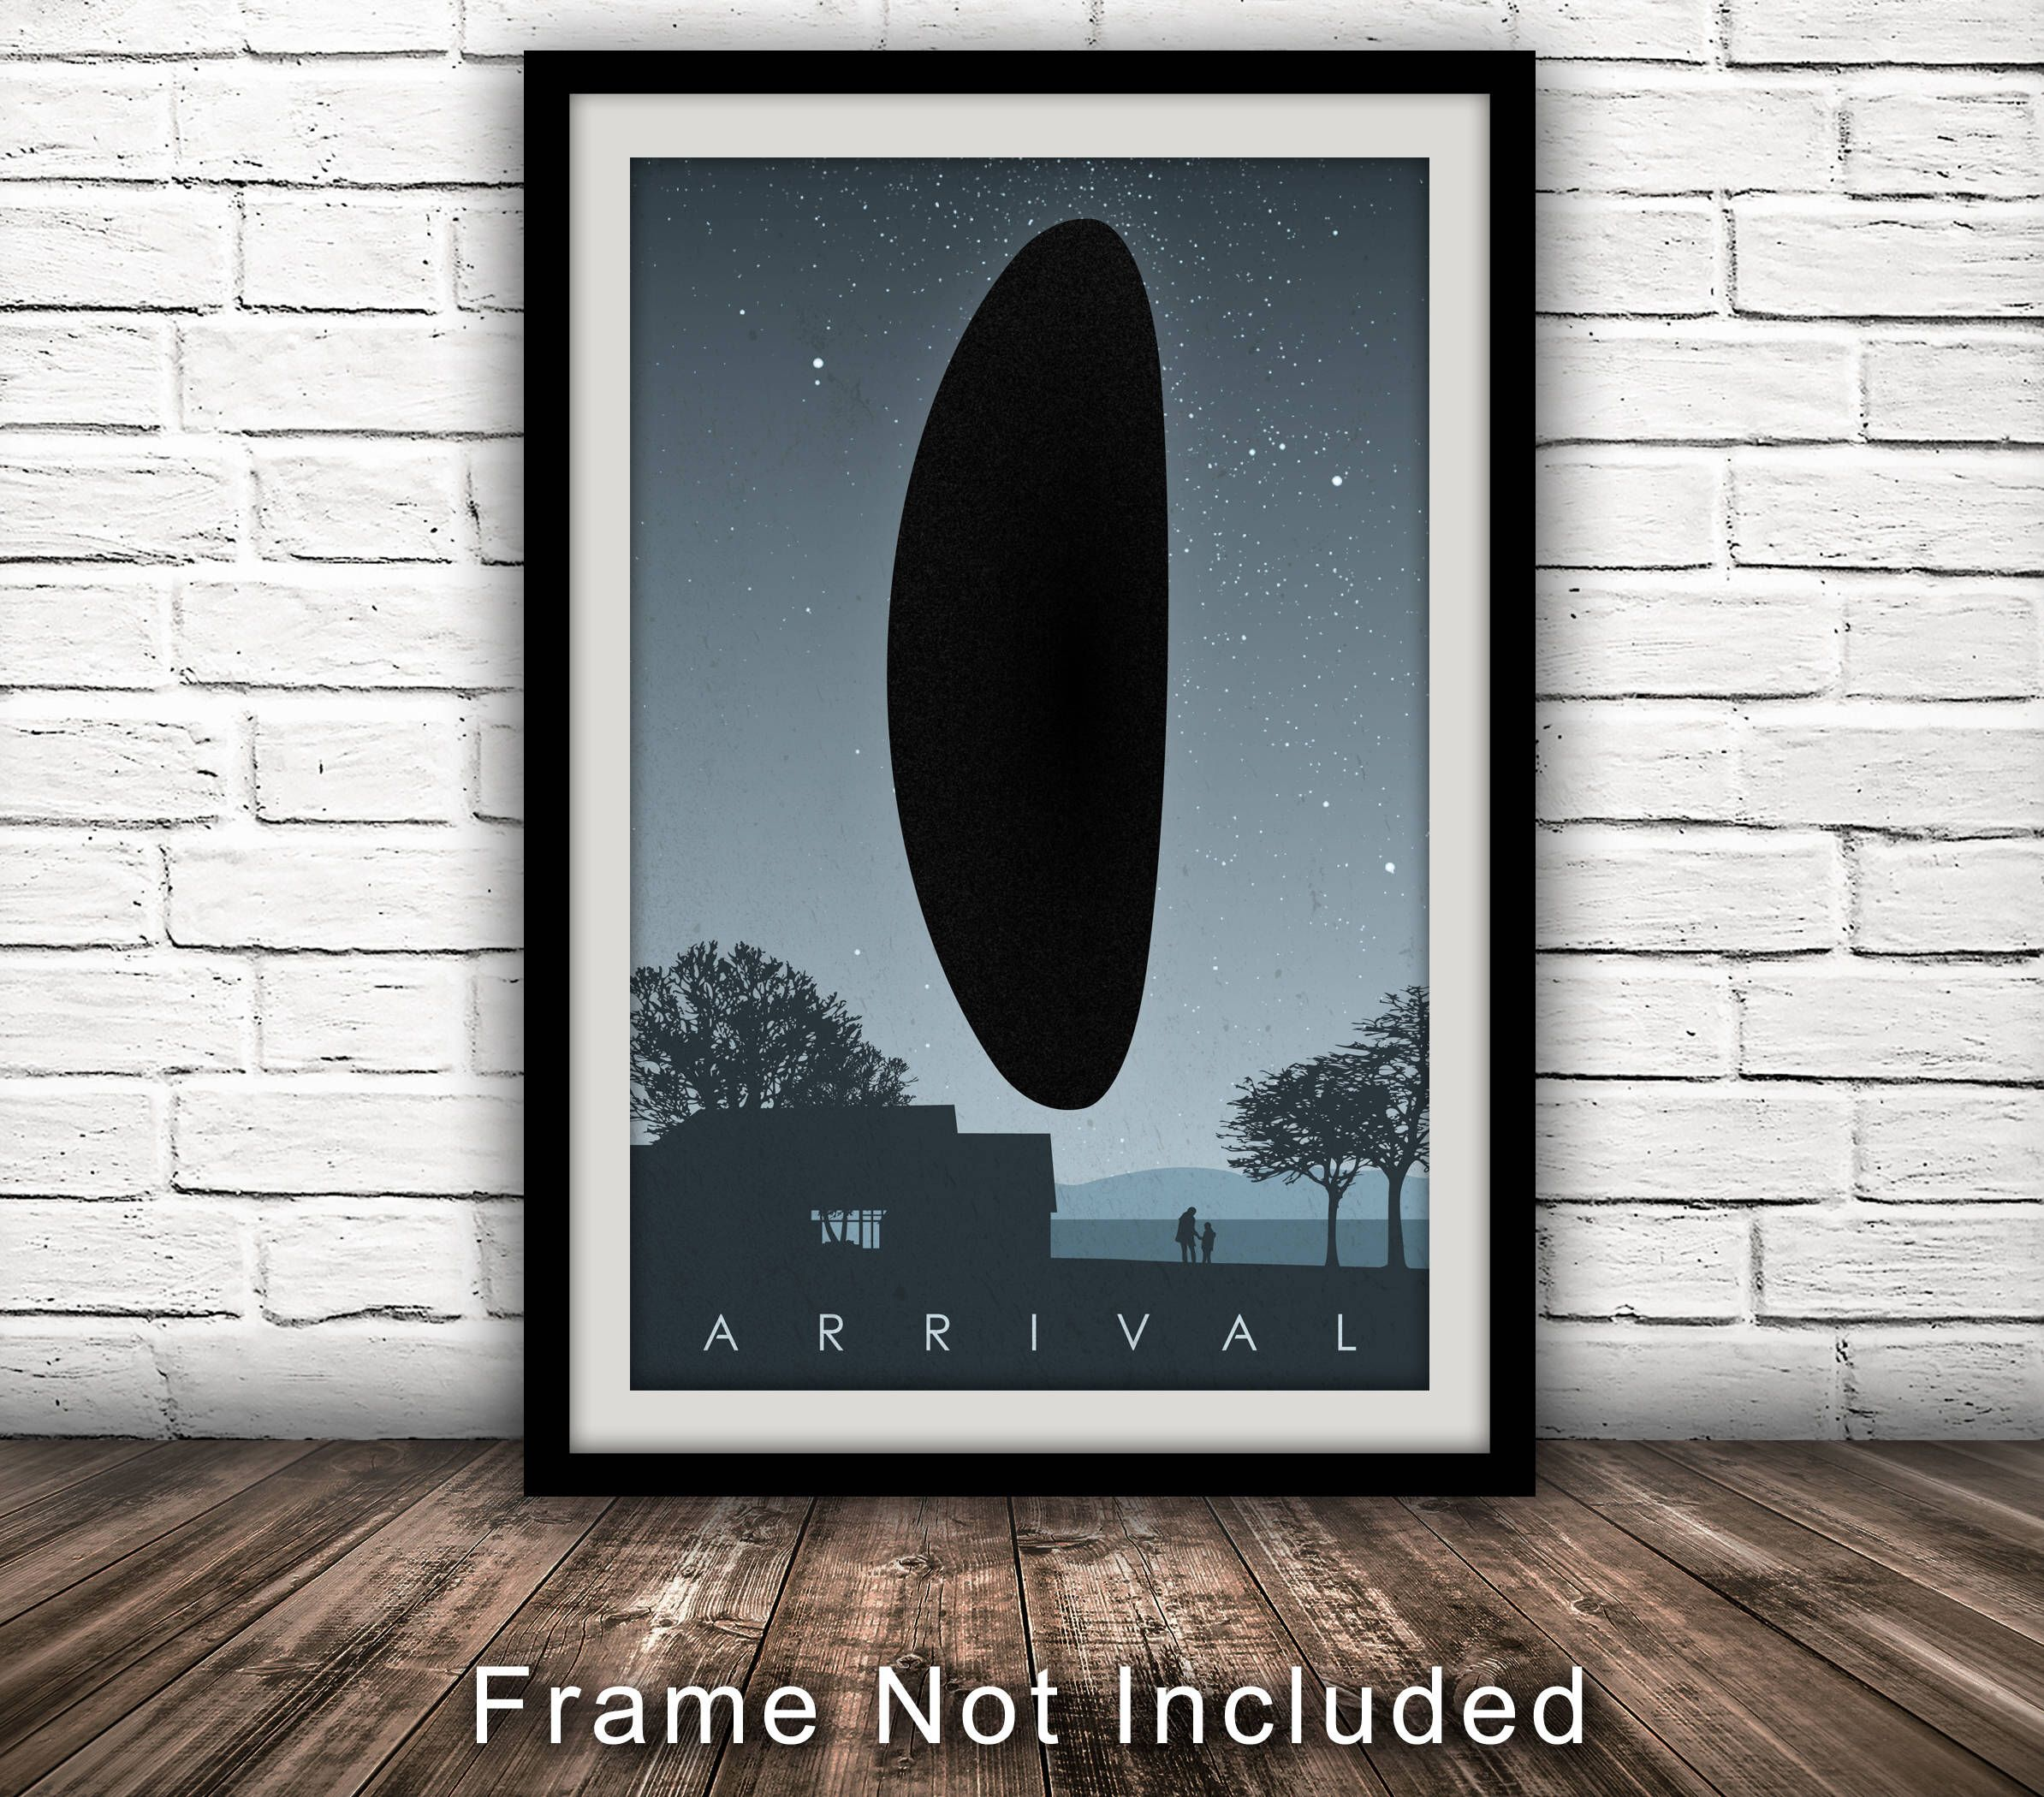 Arrival Inspired Movie Poster Minimalist Fan Art Etsy In 2020 Movie Posters Minimalist Poster Art Art